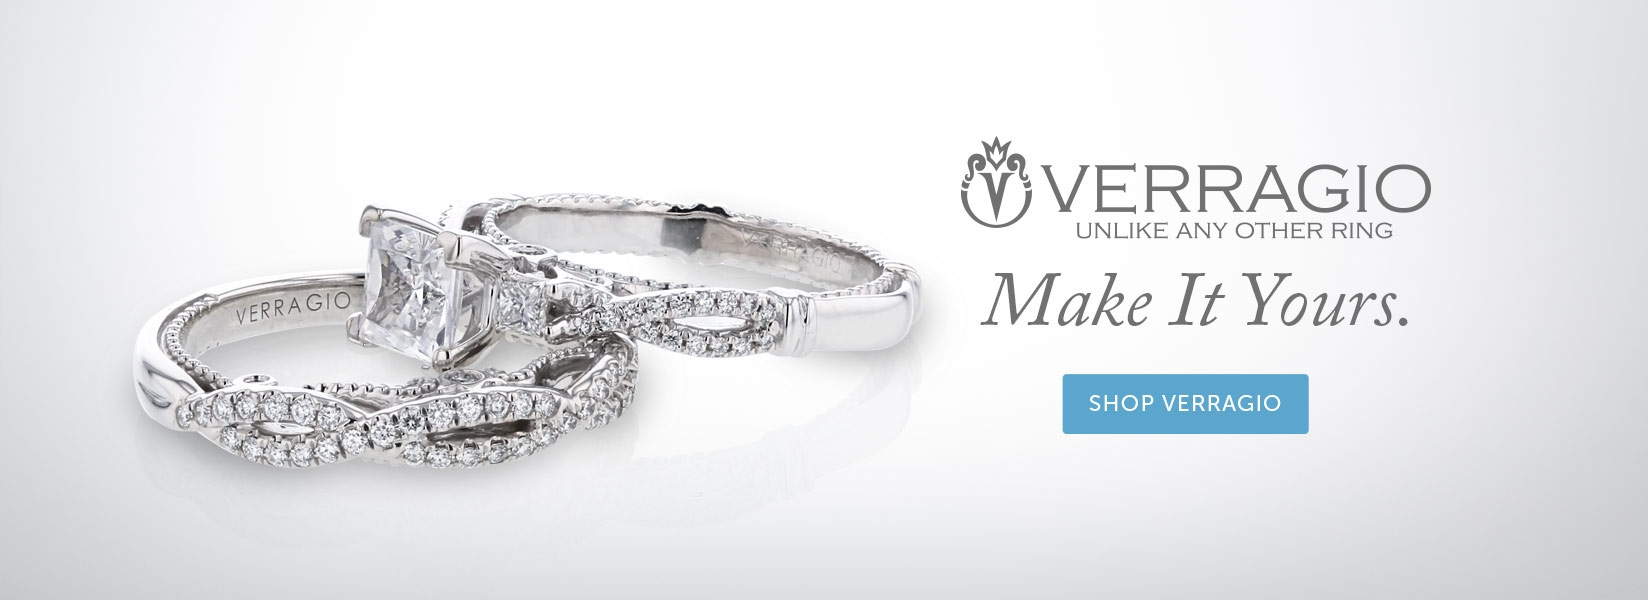 Verragio, Make It Yours.